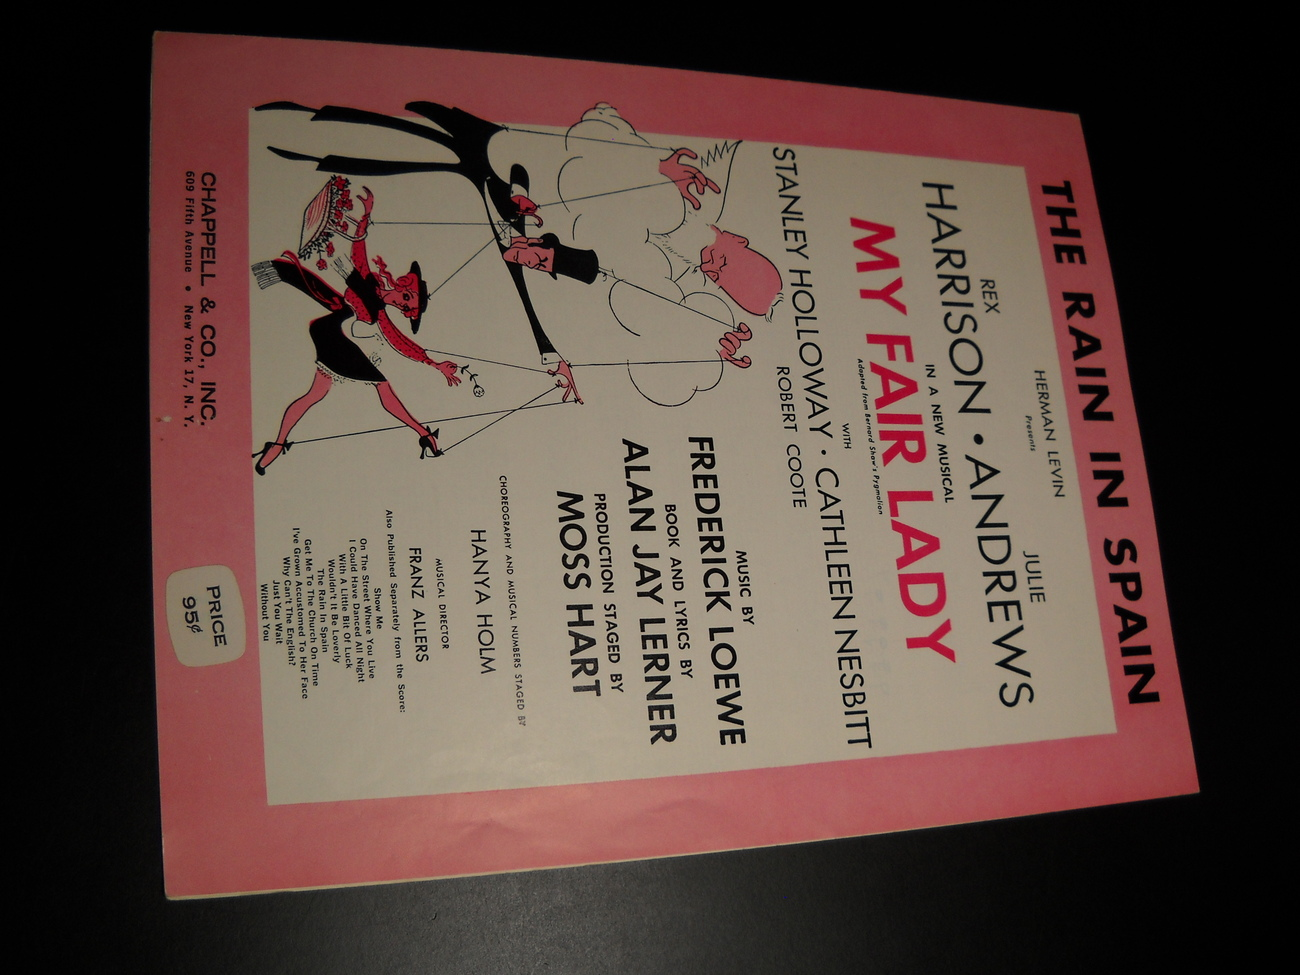 Sheet music the rain in spain my fair lady harrison andrews 1956 chappell  01